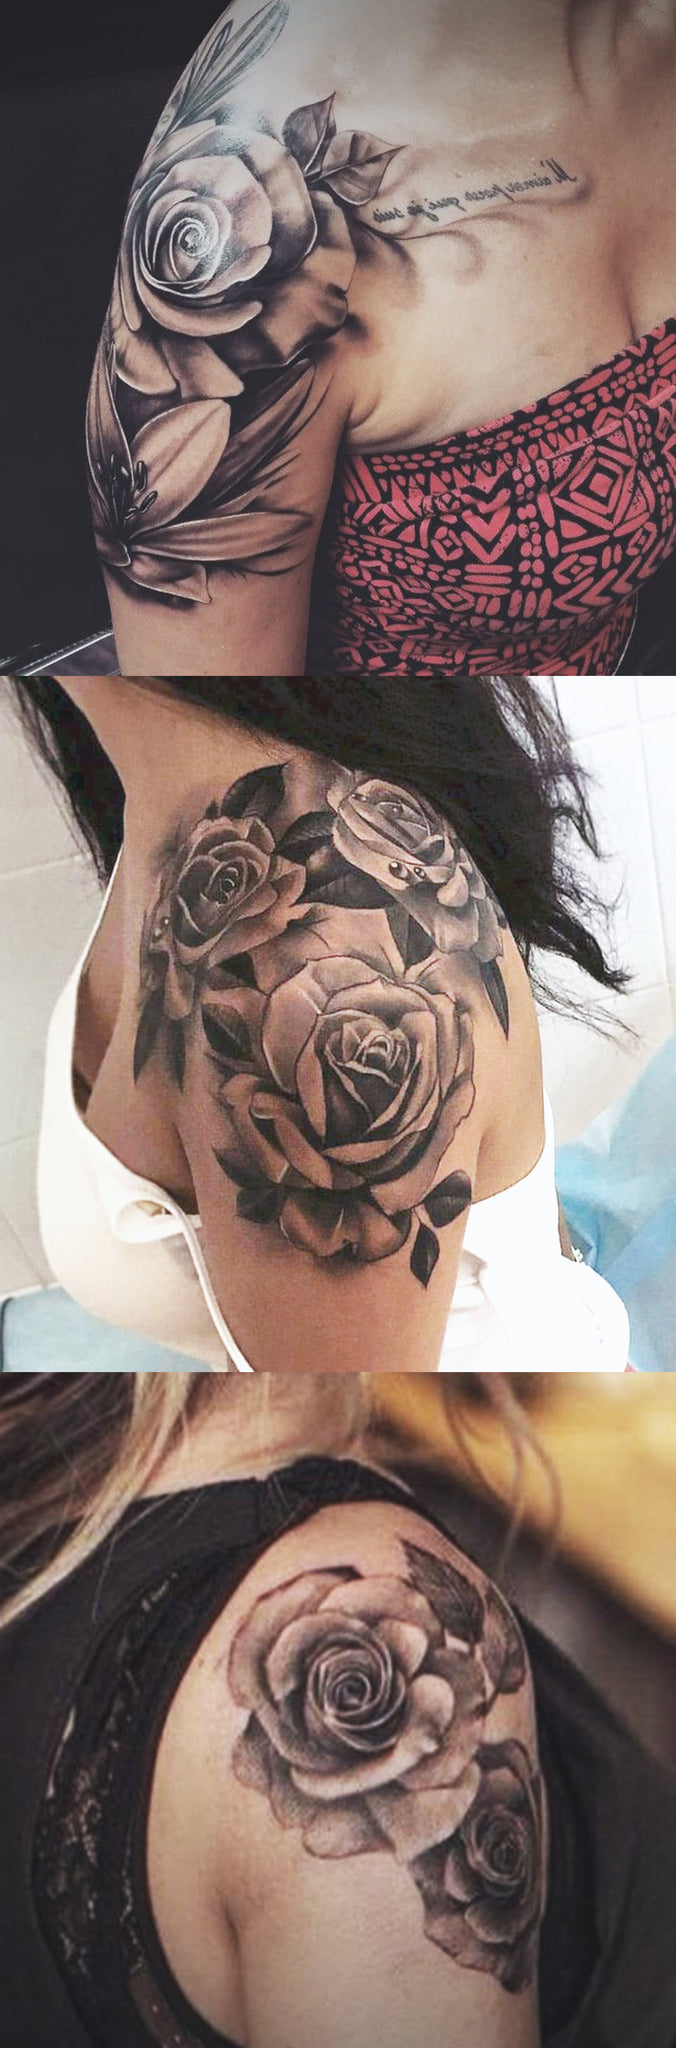 30 of the most popular shoulder tattoo ideas for women mybodiart. Black Bedroom Furniture Sets. Home Design Ideas